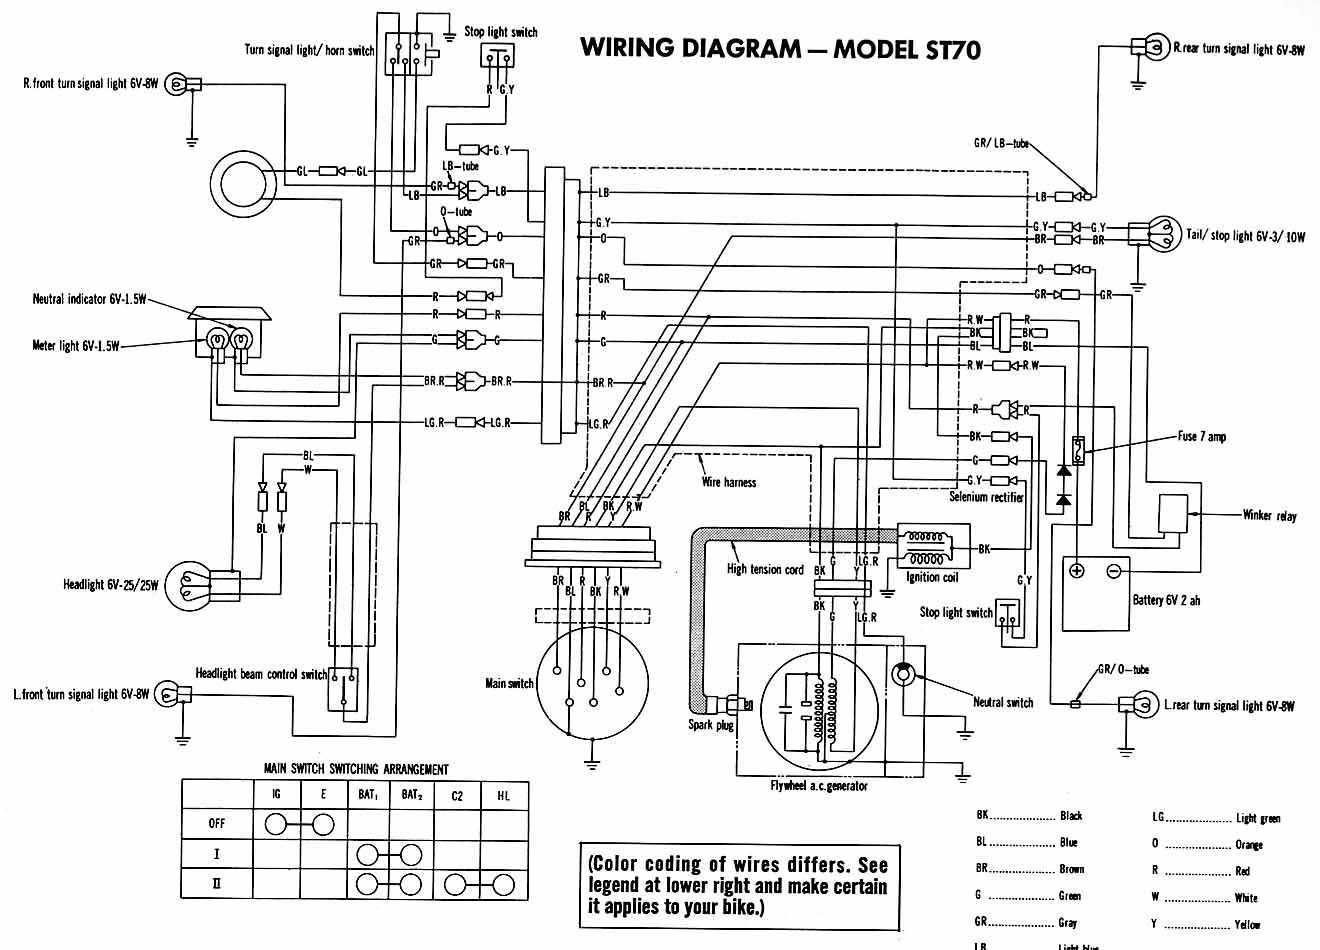 honda st70 motorcycle wiring diagram | all about wiring ... wiring diagram for 1988 honda crx free download wiring diagrams for a honda 70 free download #2